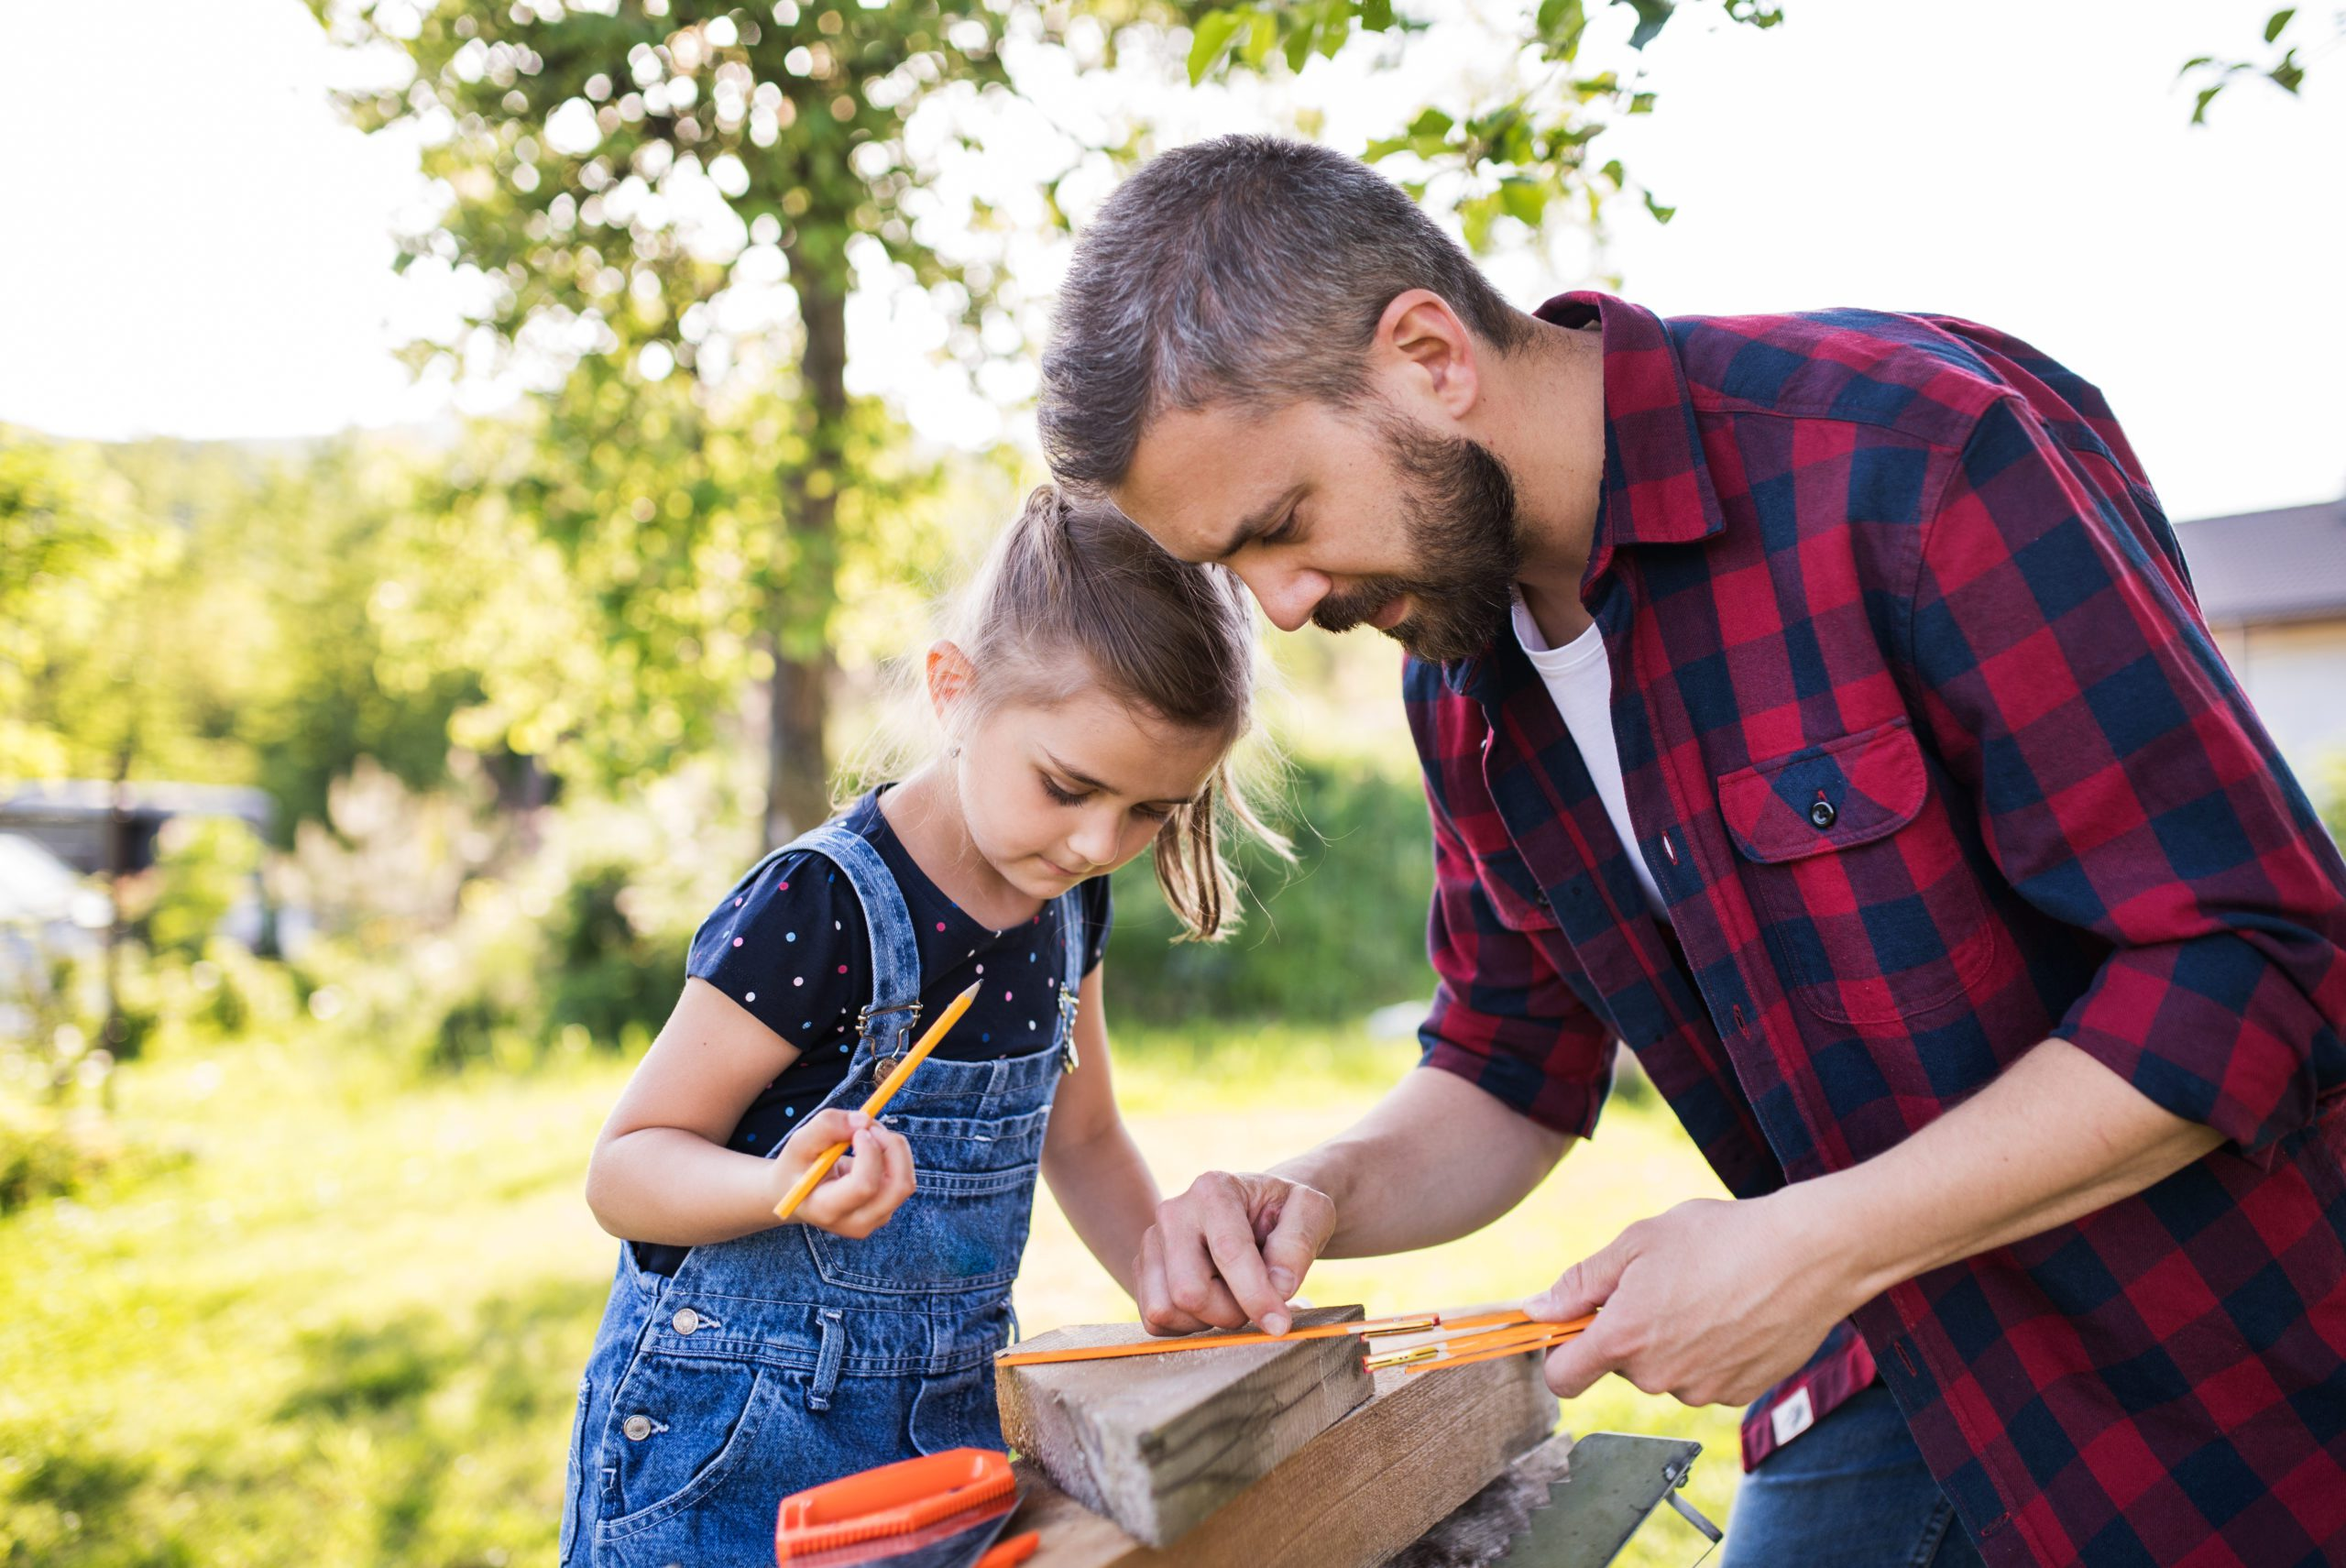 Dad's Involvement is Crucial when Parenting Kids with Autism. Find out what difference a Father's role can make in raising autistic daughters #autismparenting #asd #autism #themomkind